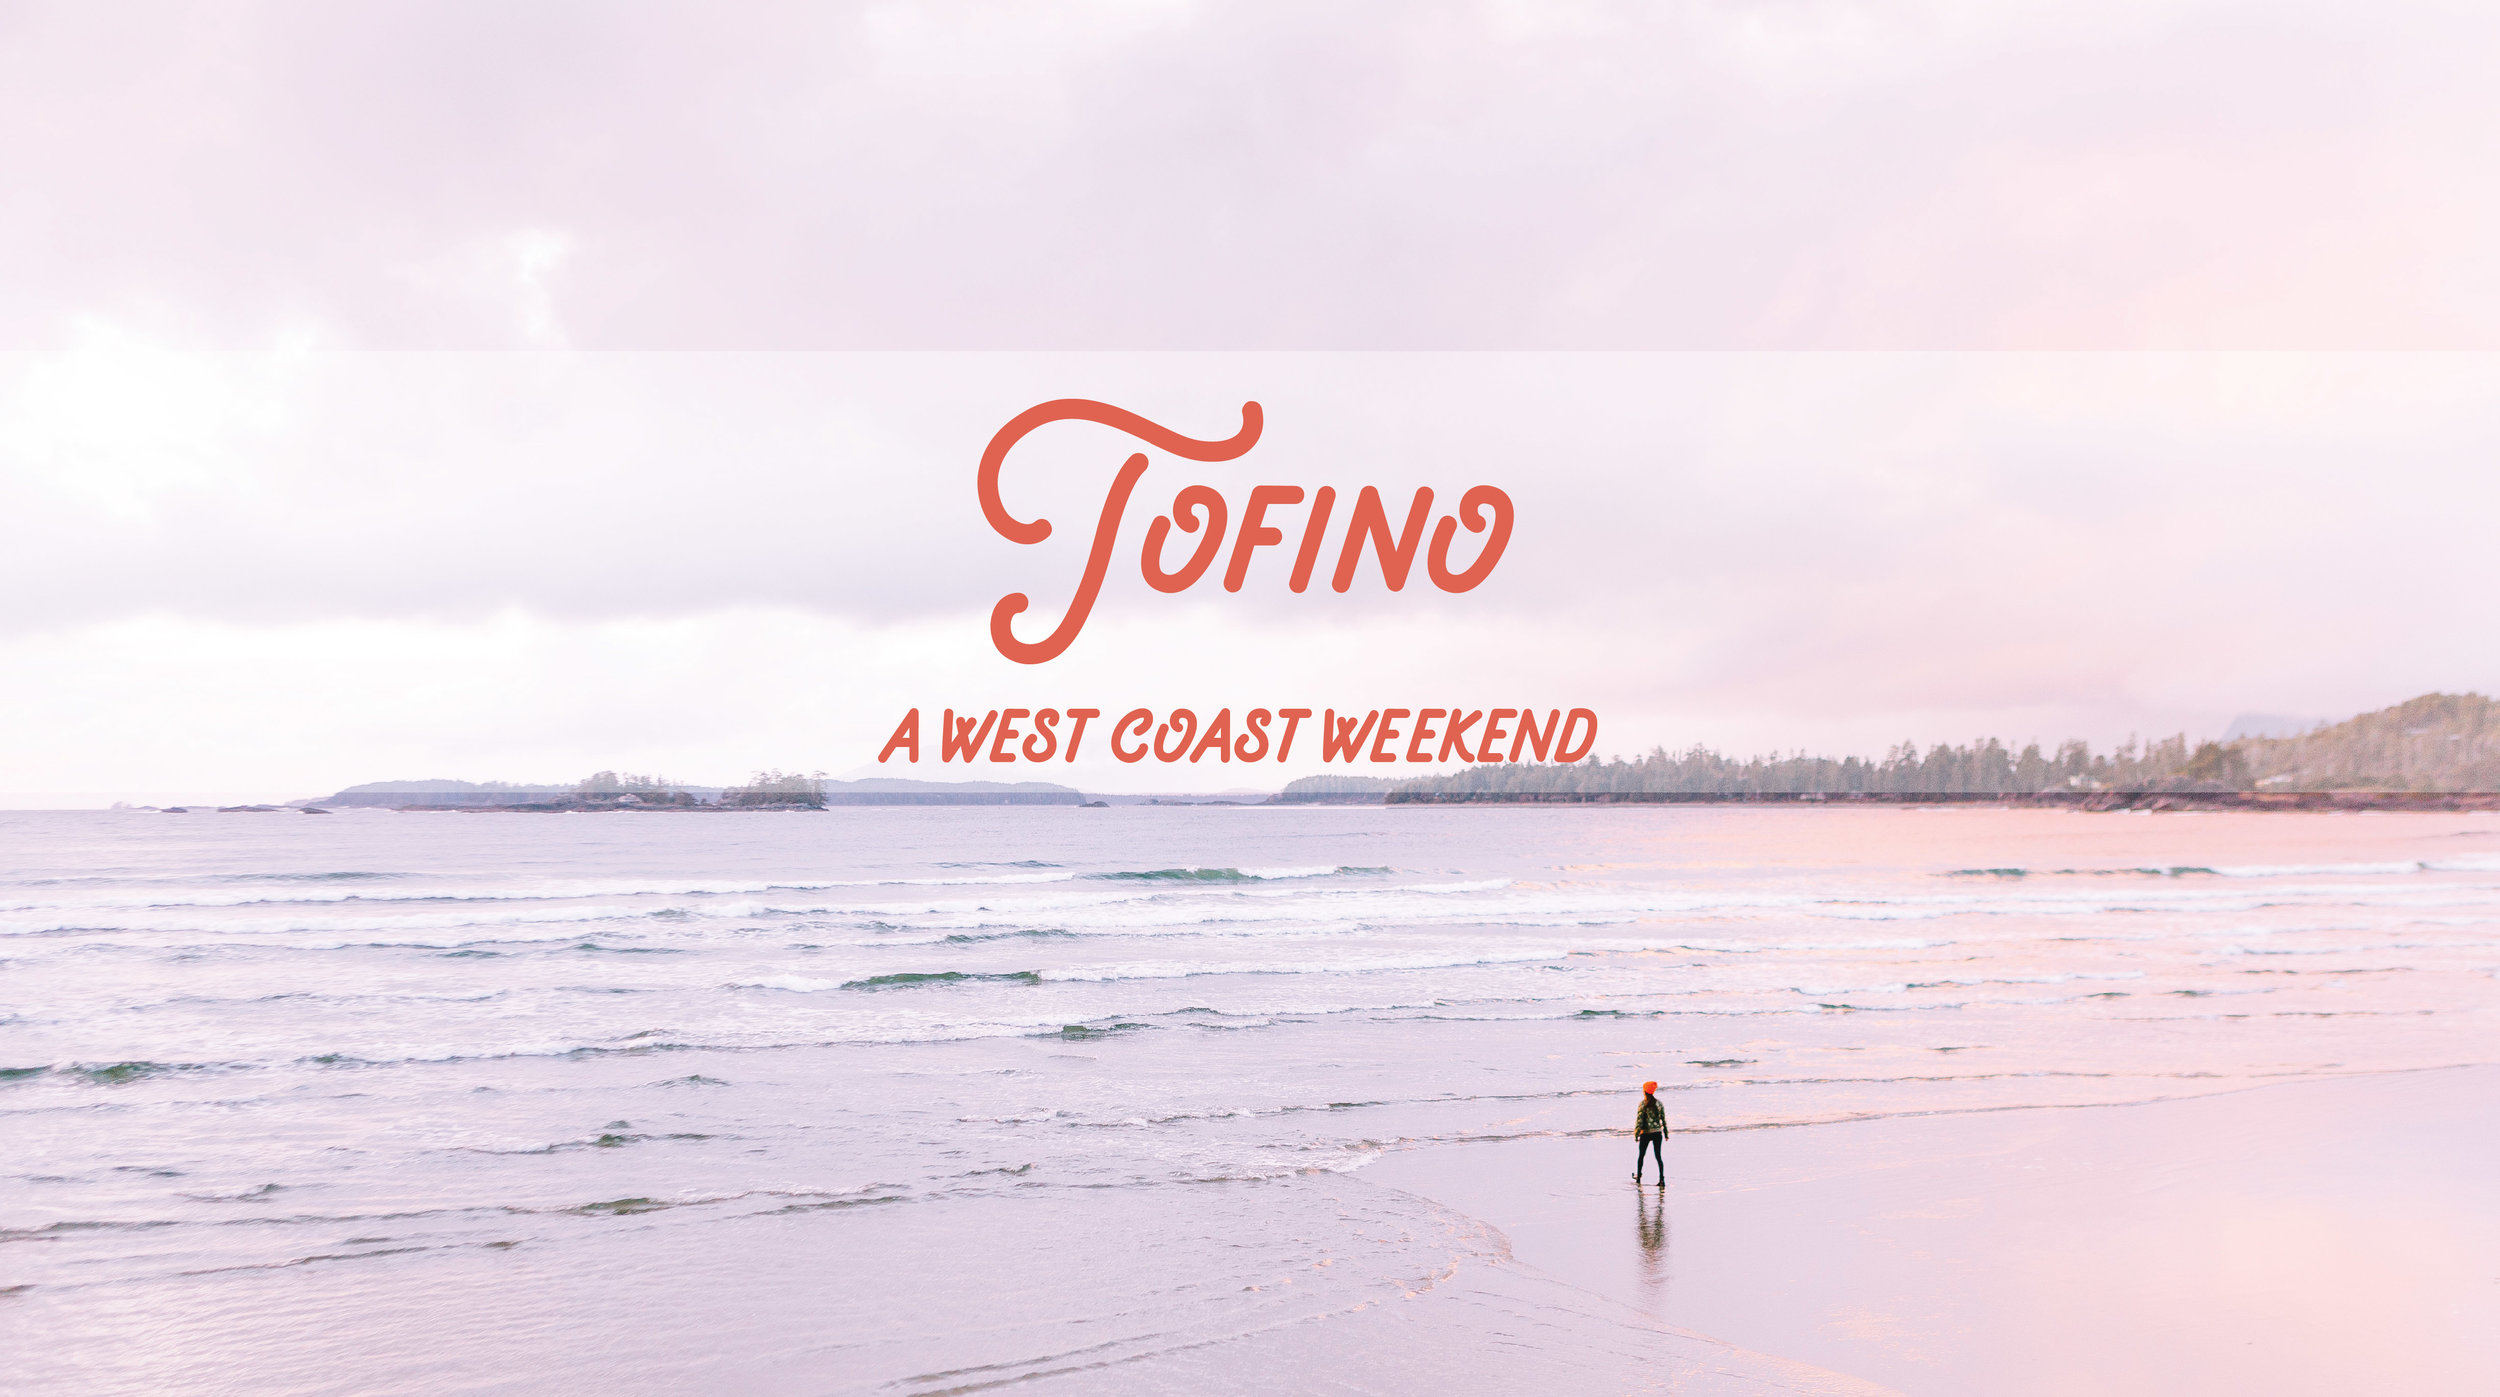 Tofino - A west coast weekend by VancityWild